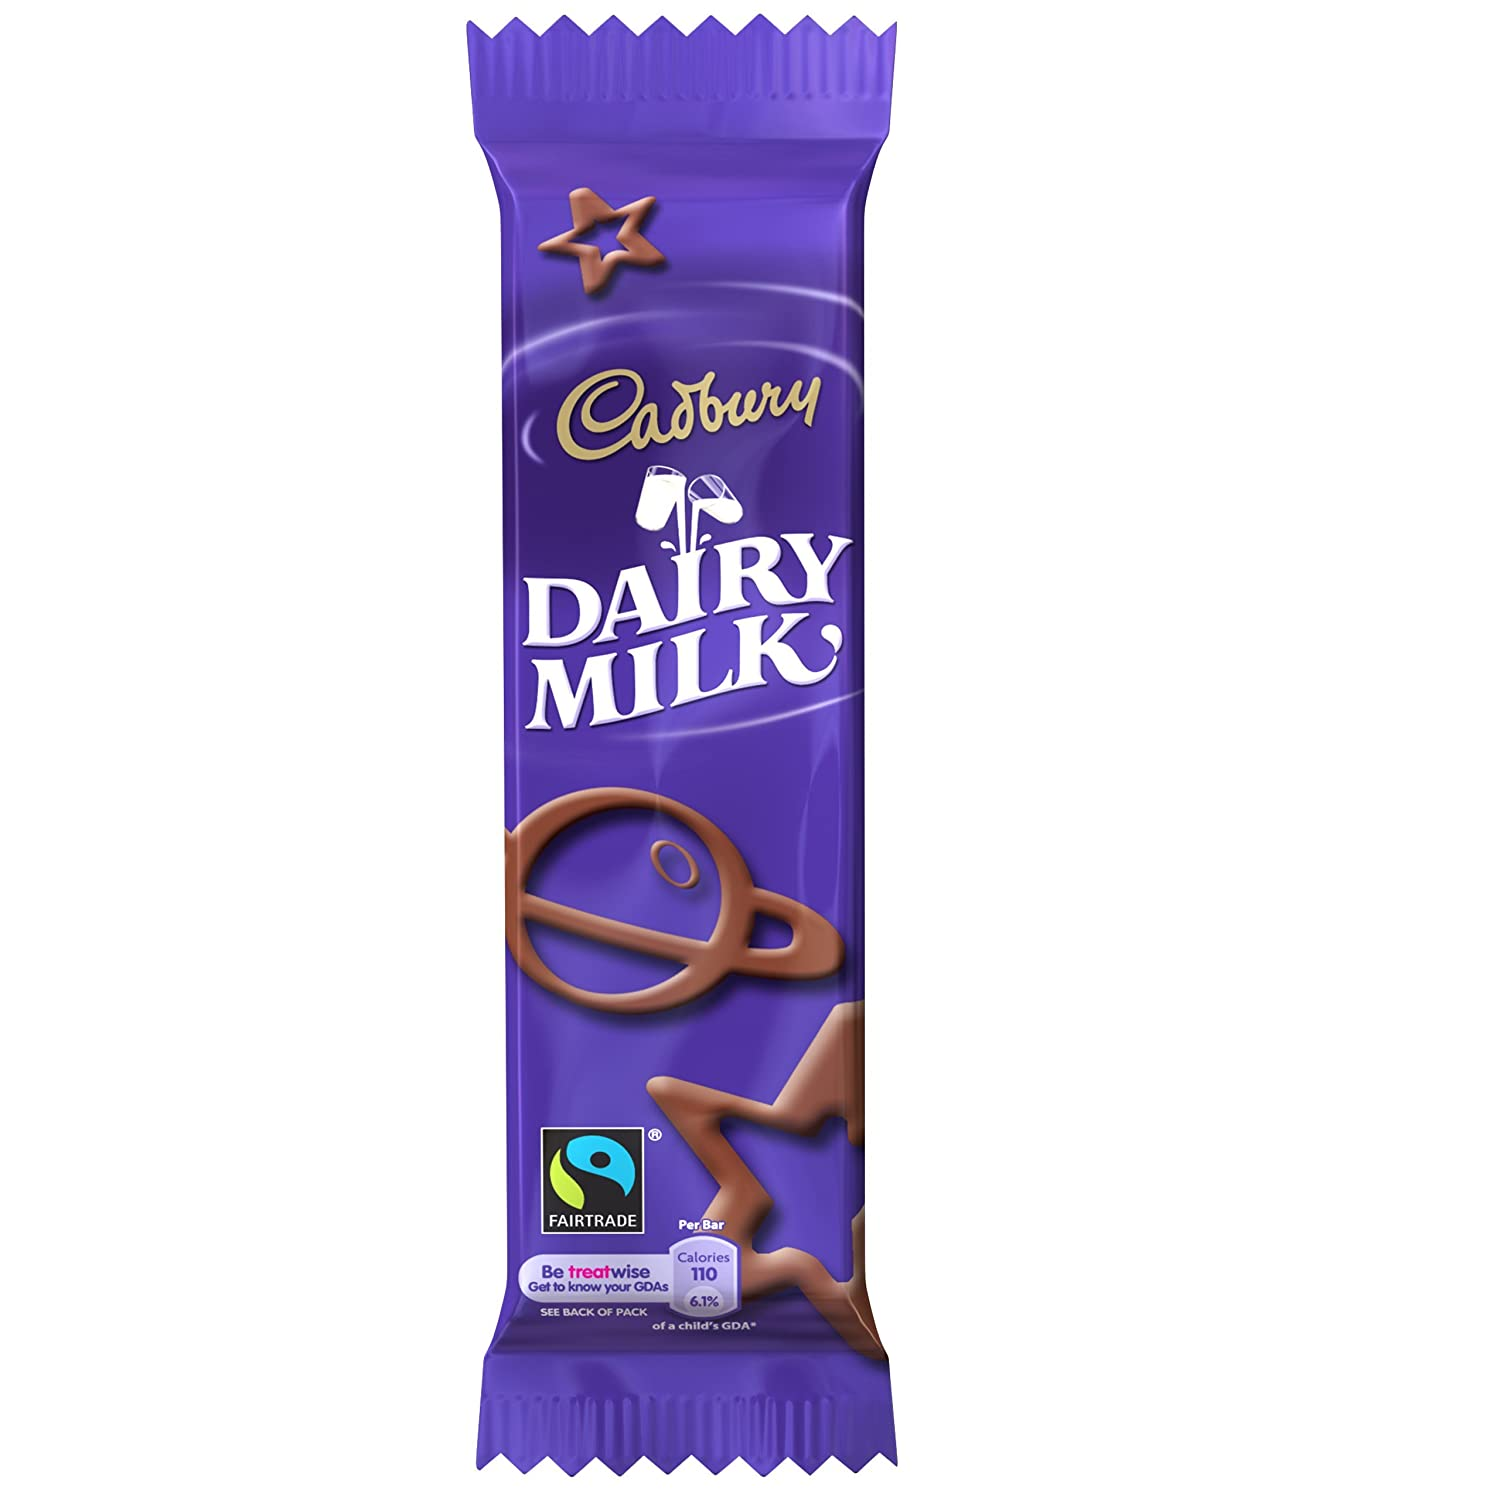 Cadbury's Dairy Milk Little Bars 6 pack 84g